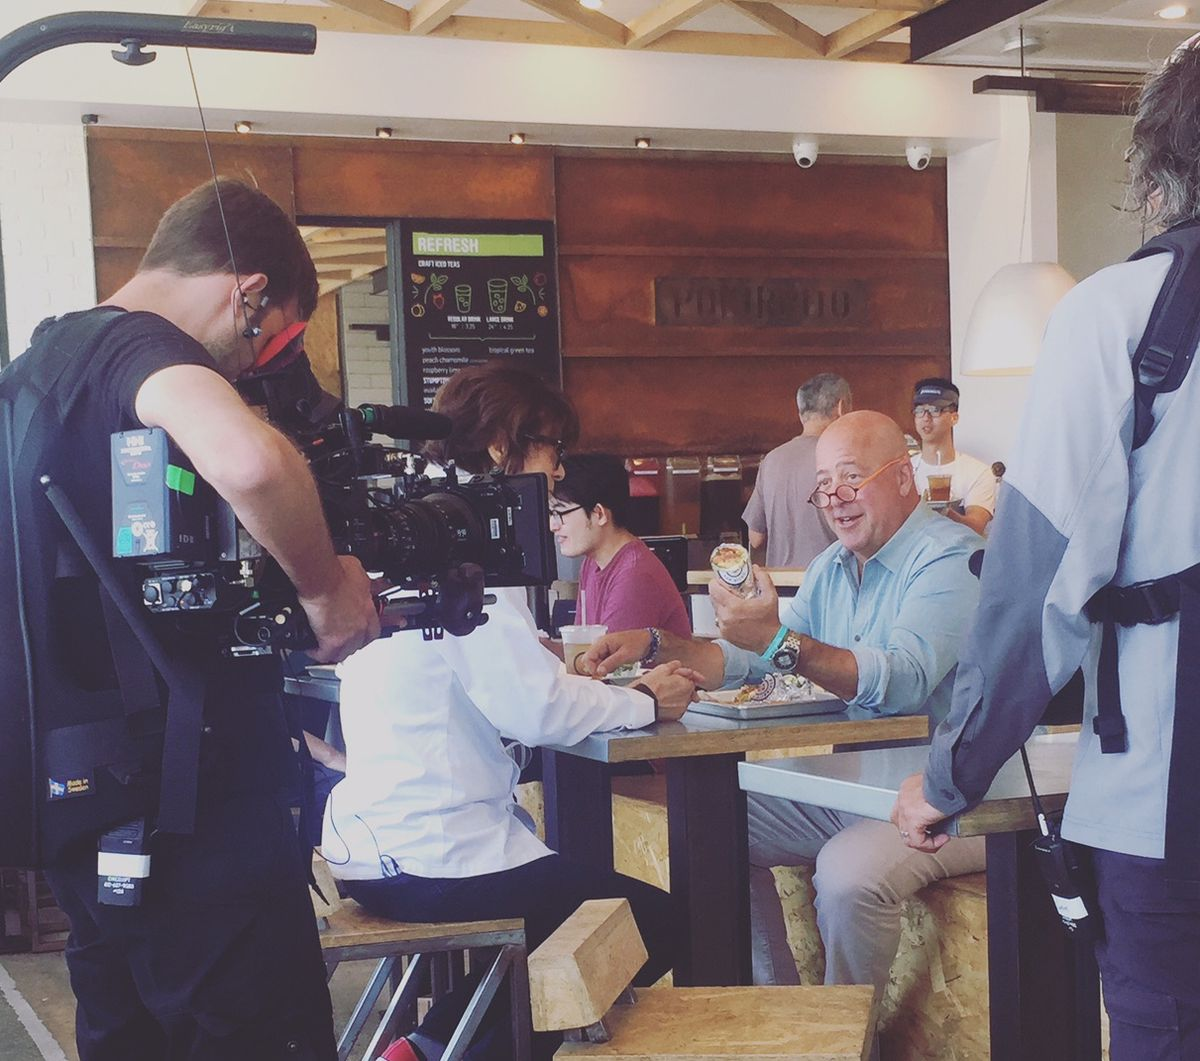 Andrew Zimmern Spotted At Menya Ramen, Catalina Offshore